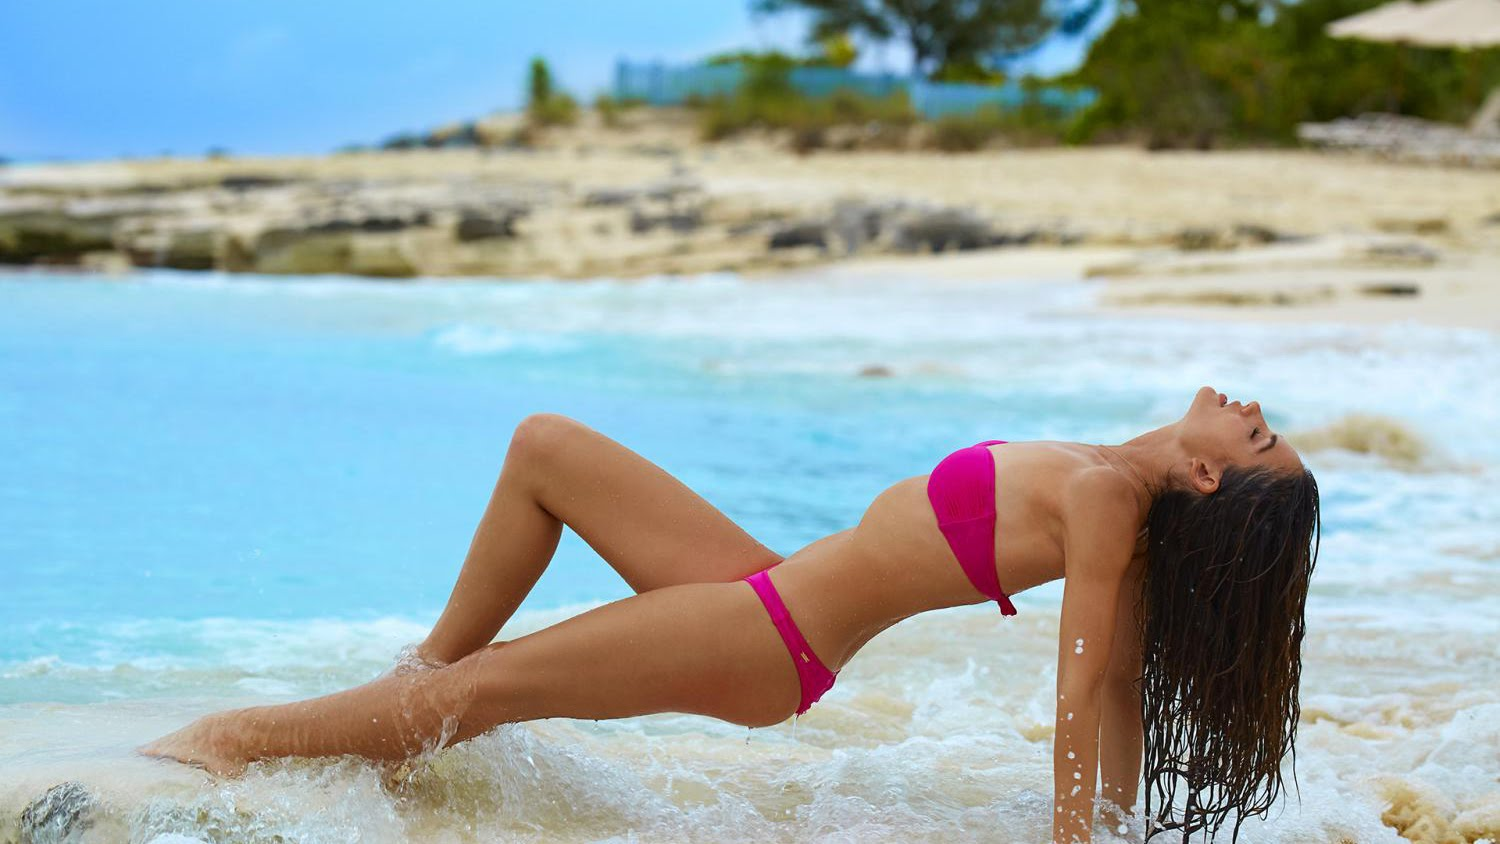 Lily Aldridge's sexy outtakes for SI Swimsuit 2016